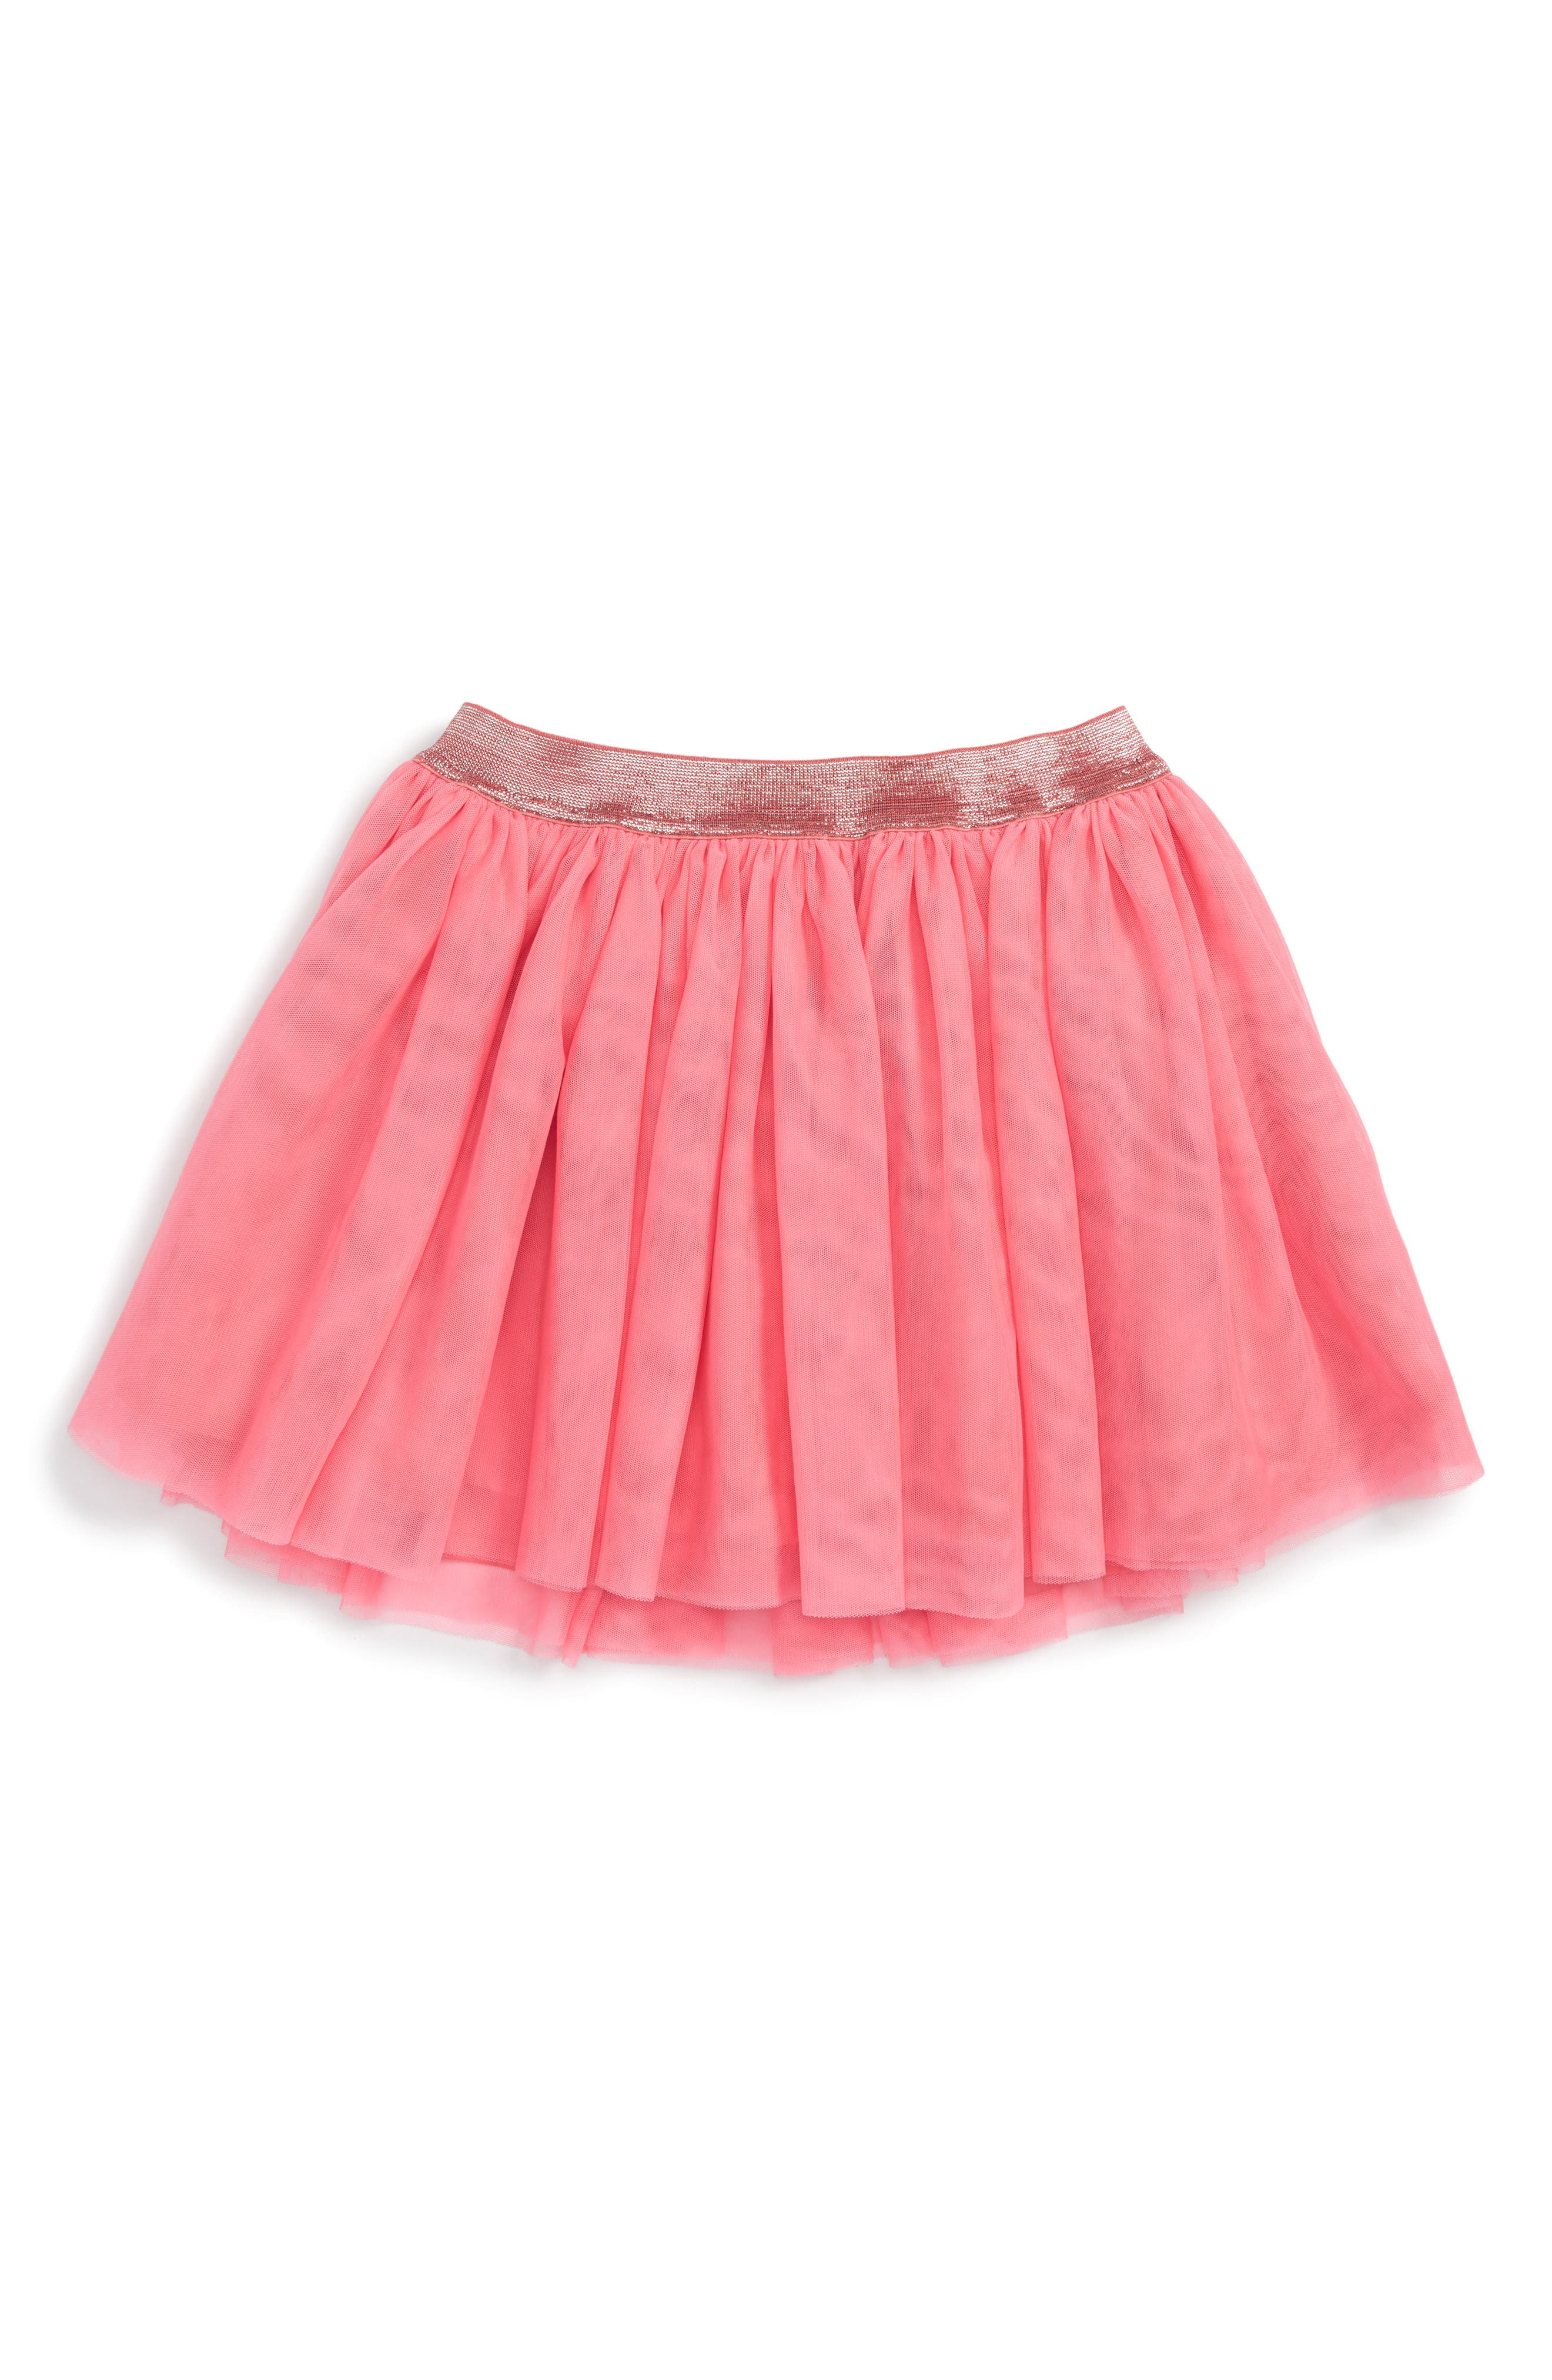 Alternate Image 1 Selected - Tucker + Tate Tulle Skirt (Toddler Girls, Little Girls & Big Girls)